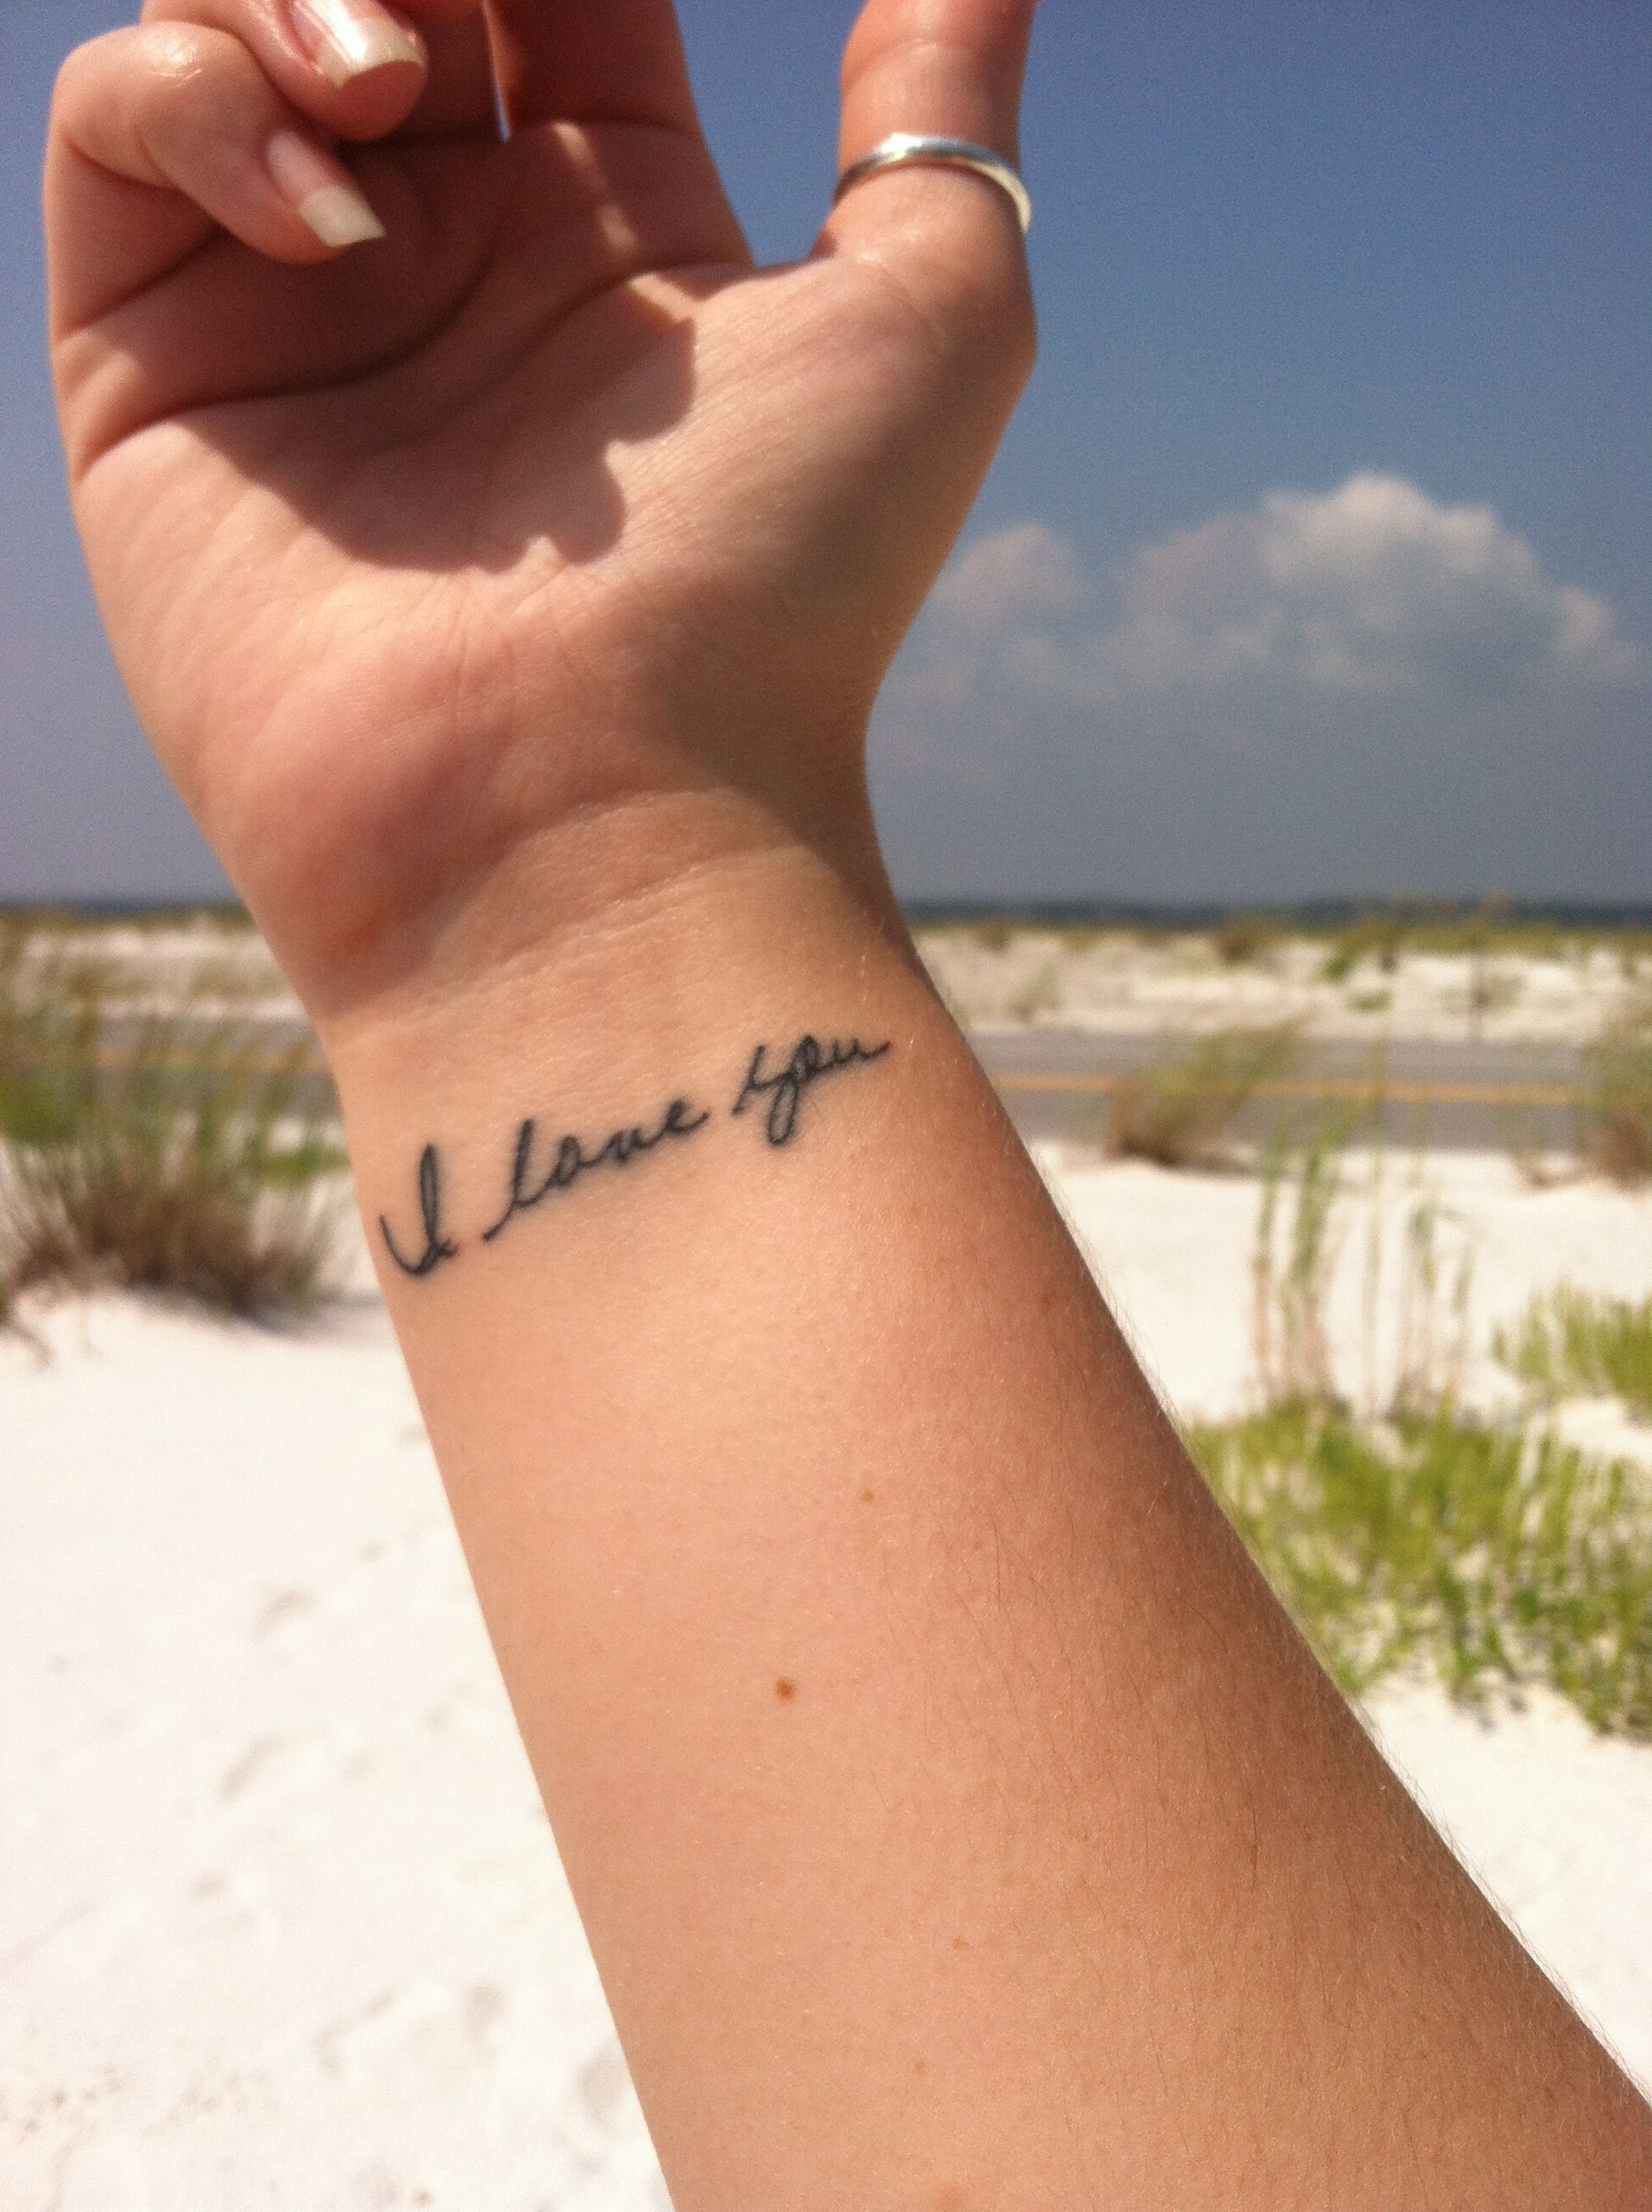 I Love You Tattoo In My Grandmother S Handwriting Done By Grimm At Waves Panama City Beach Fl